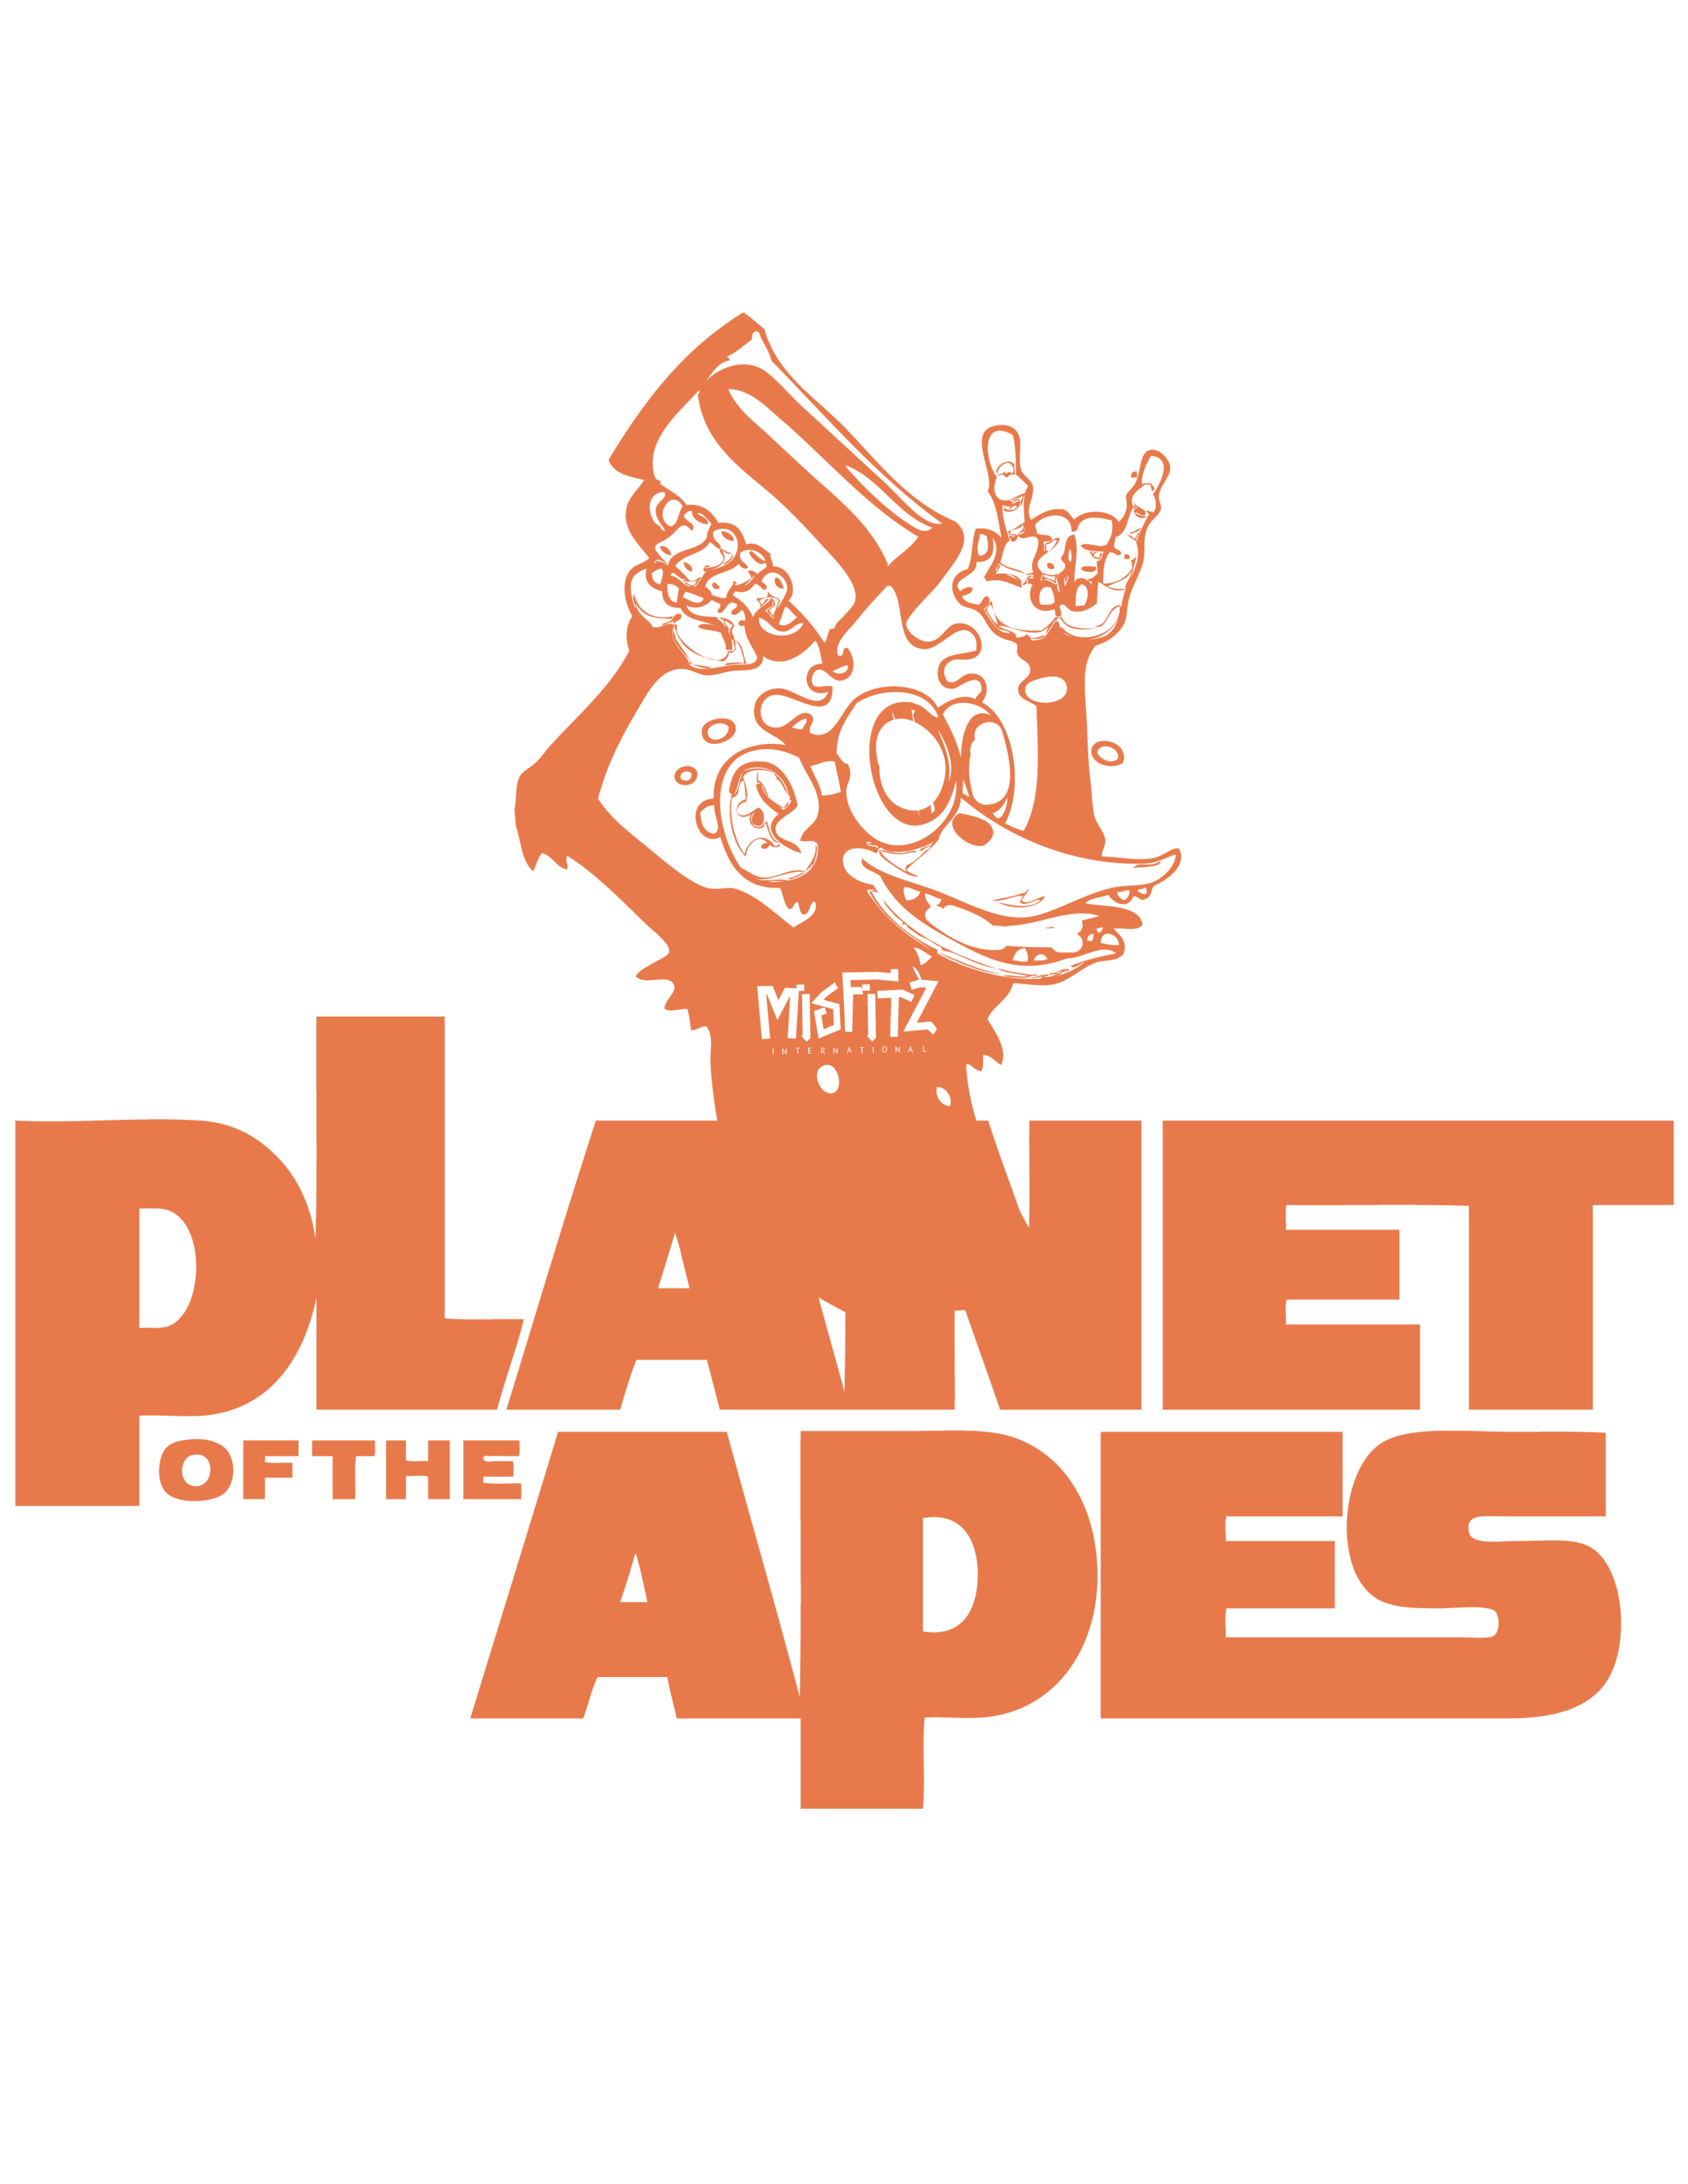 PLANET OF THE APES AND DRUNKEN MONKEY-01.png